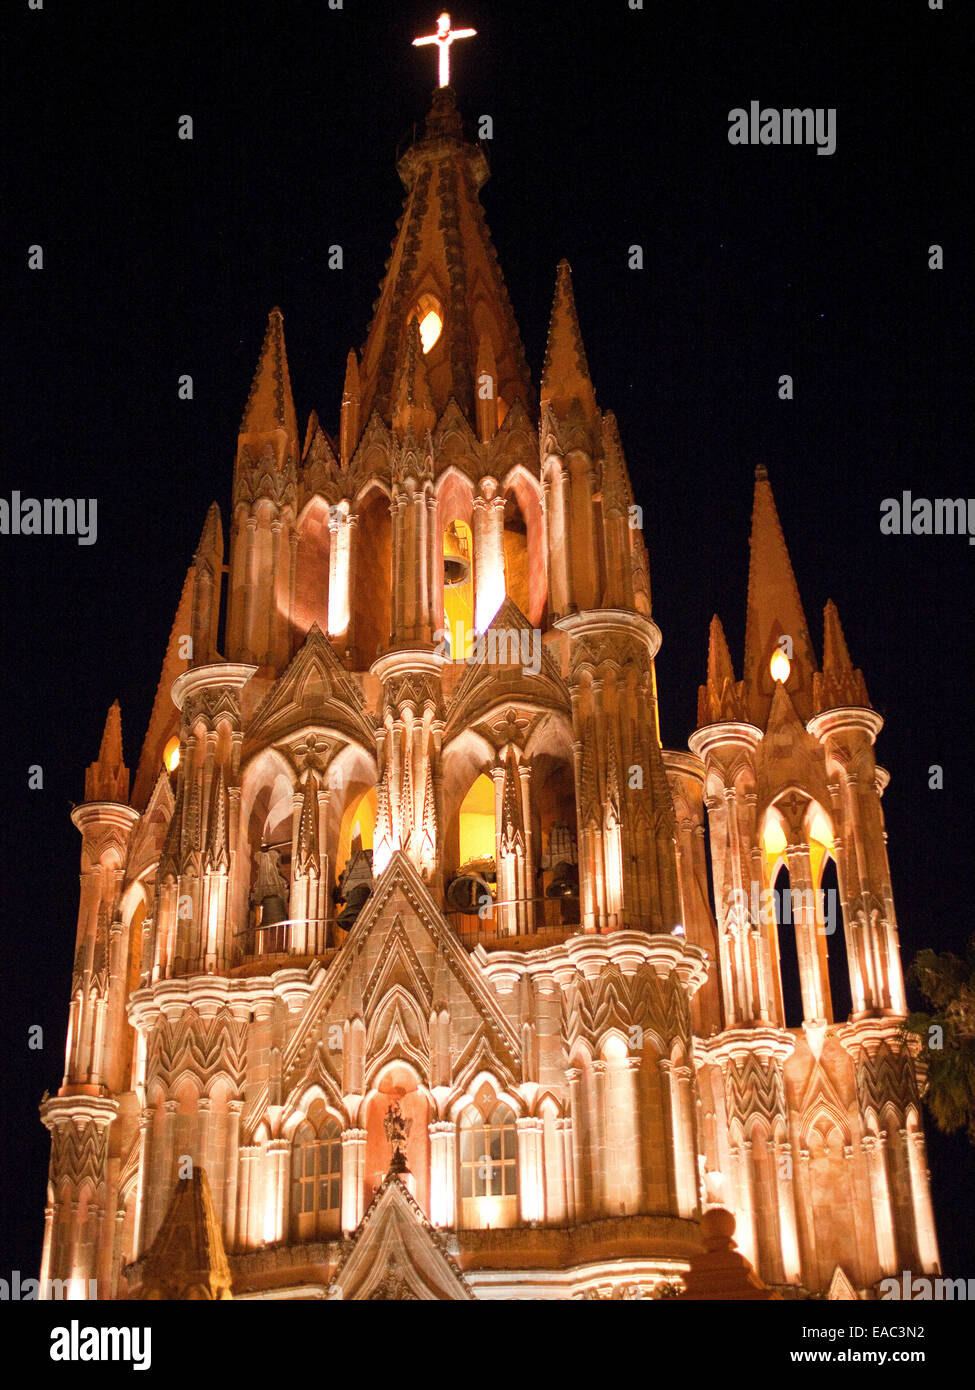 Spire of Old Church at Night - Stock Image